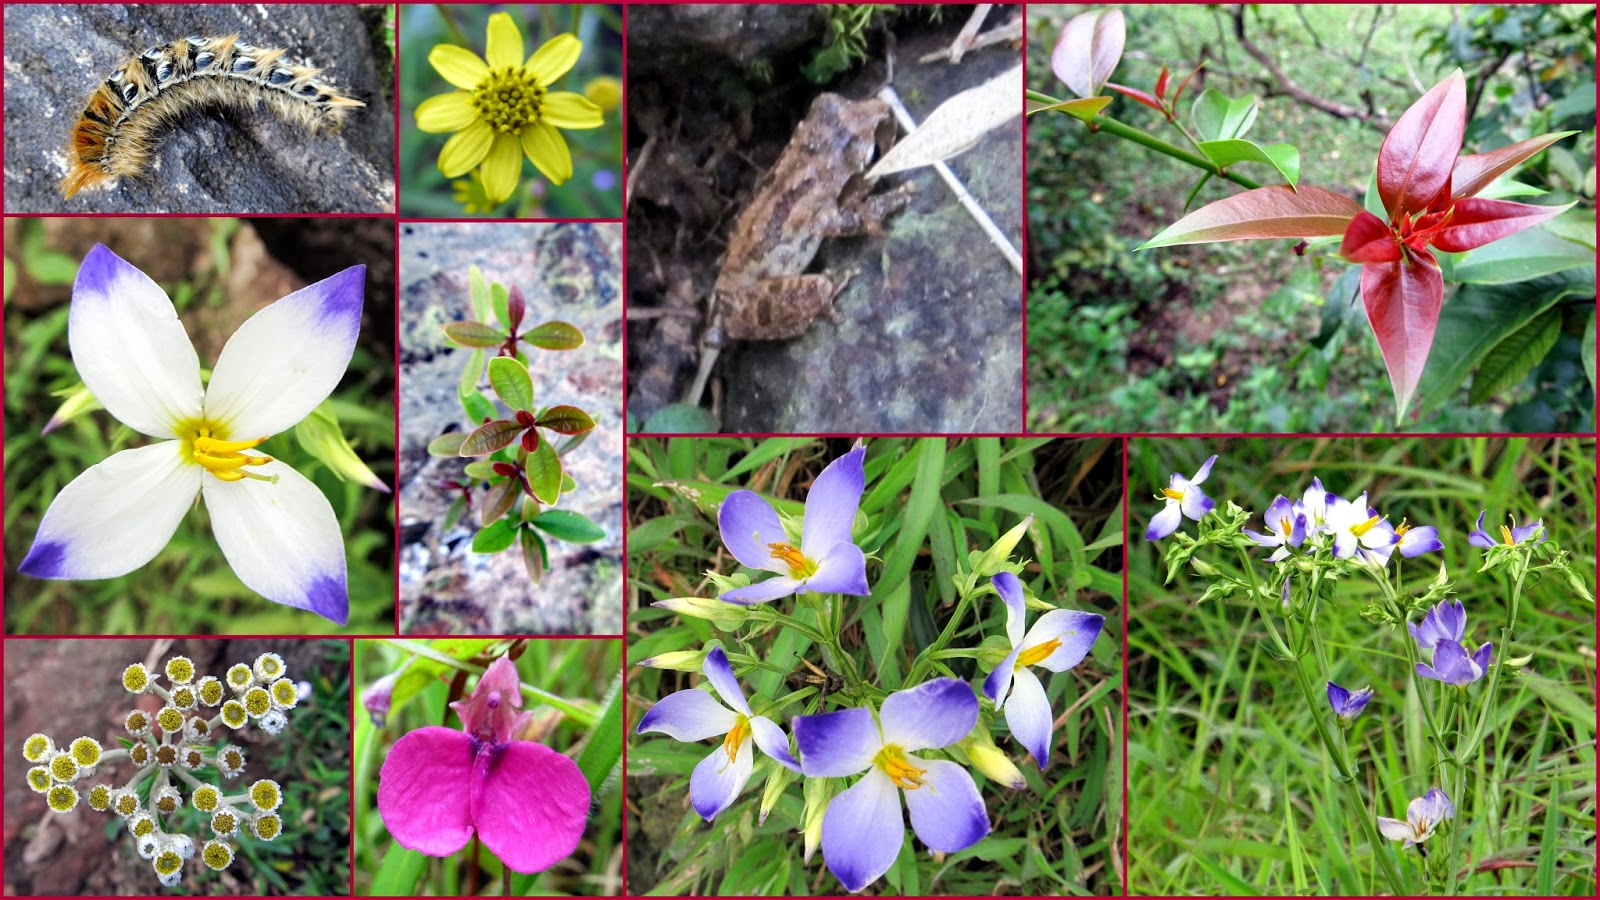 Little Beauties captured during KP trek